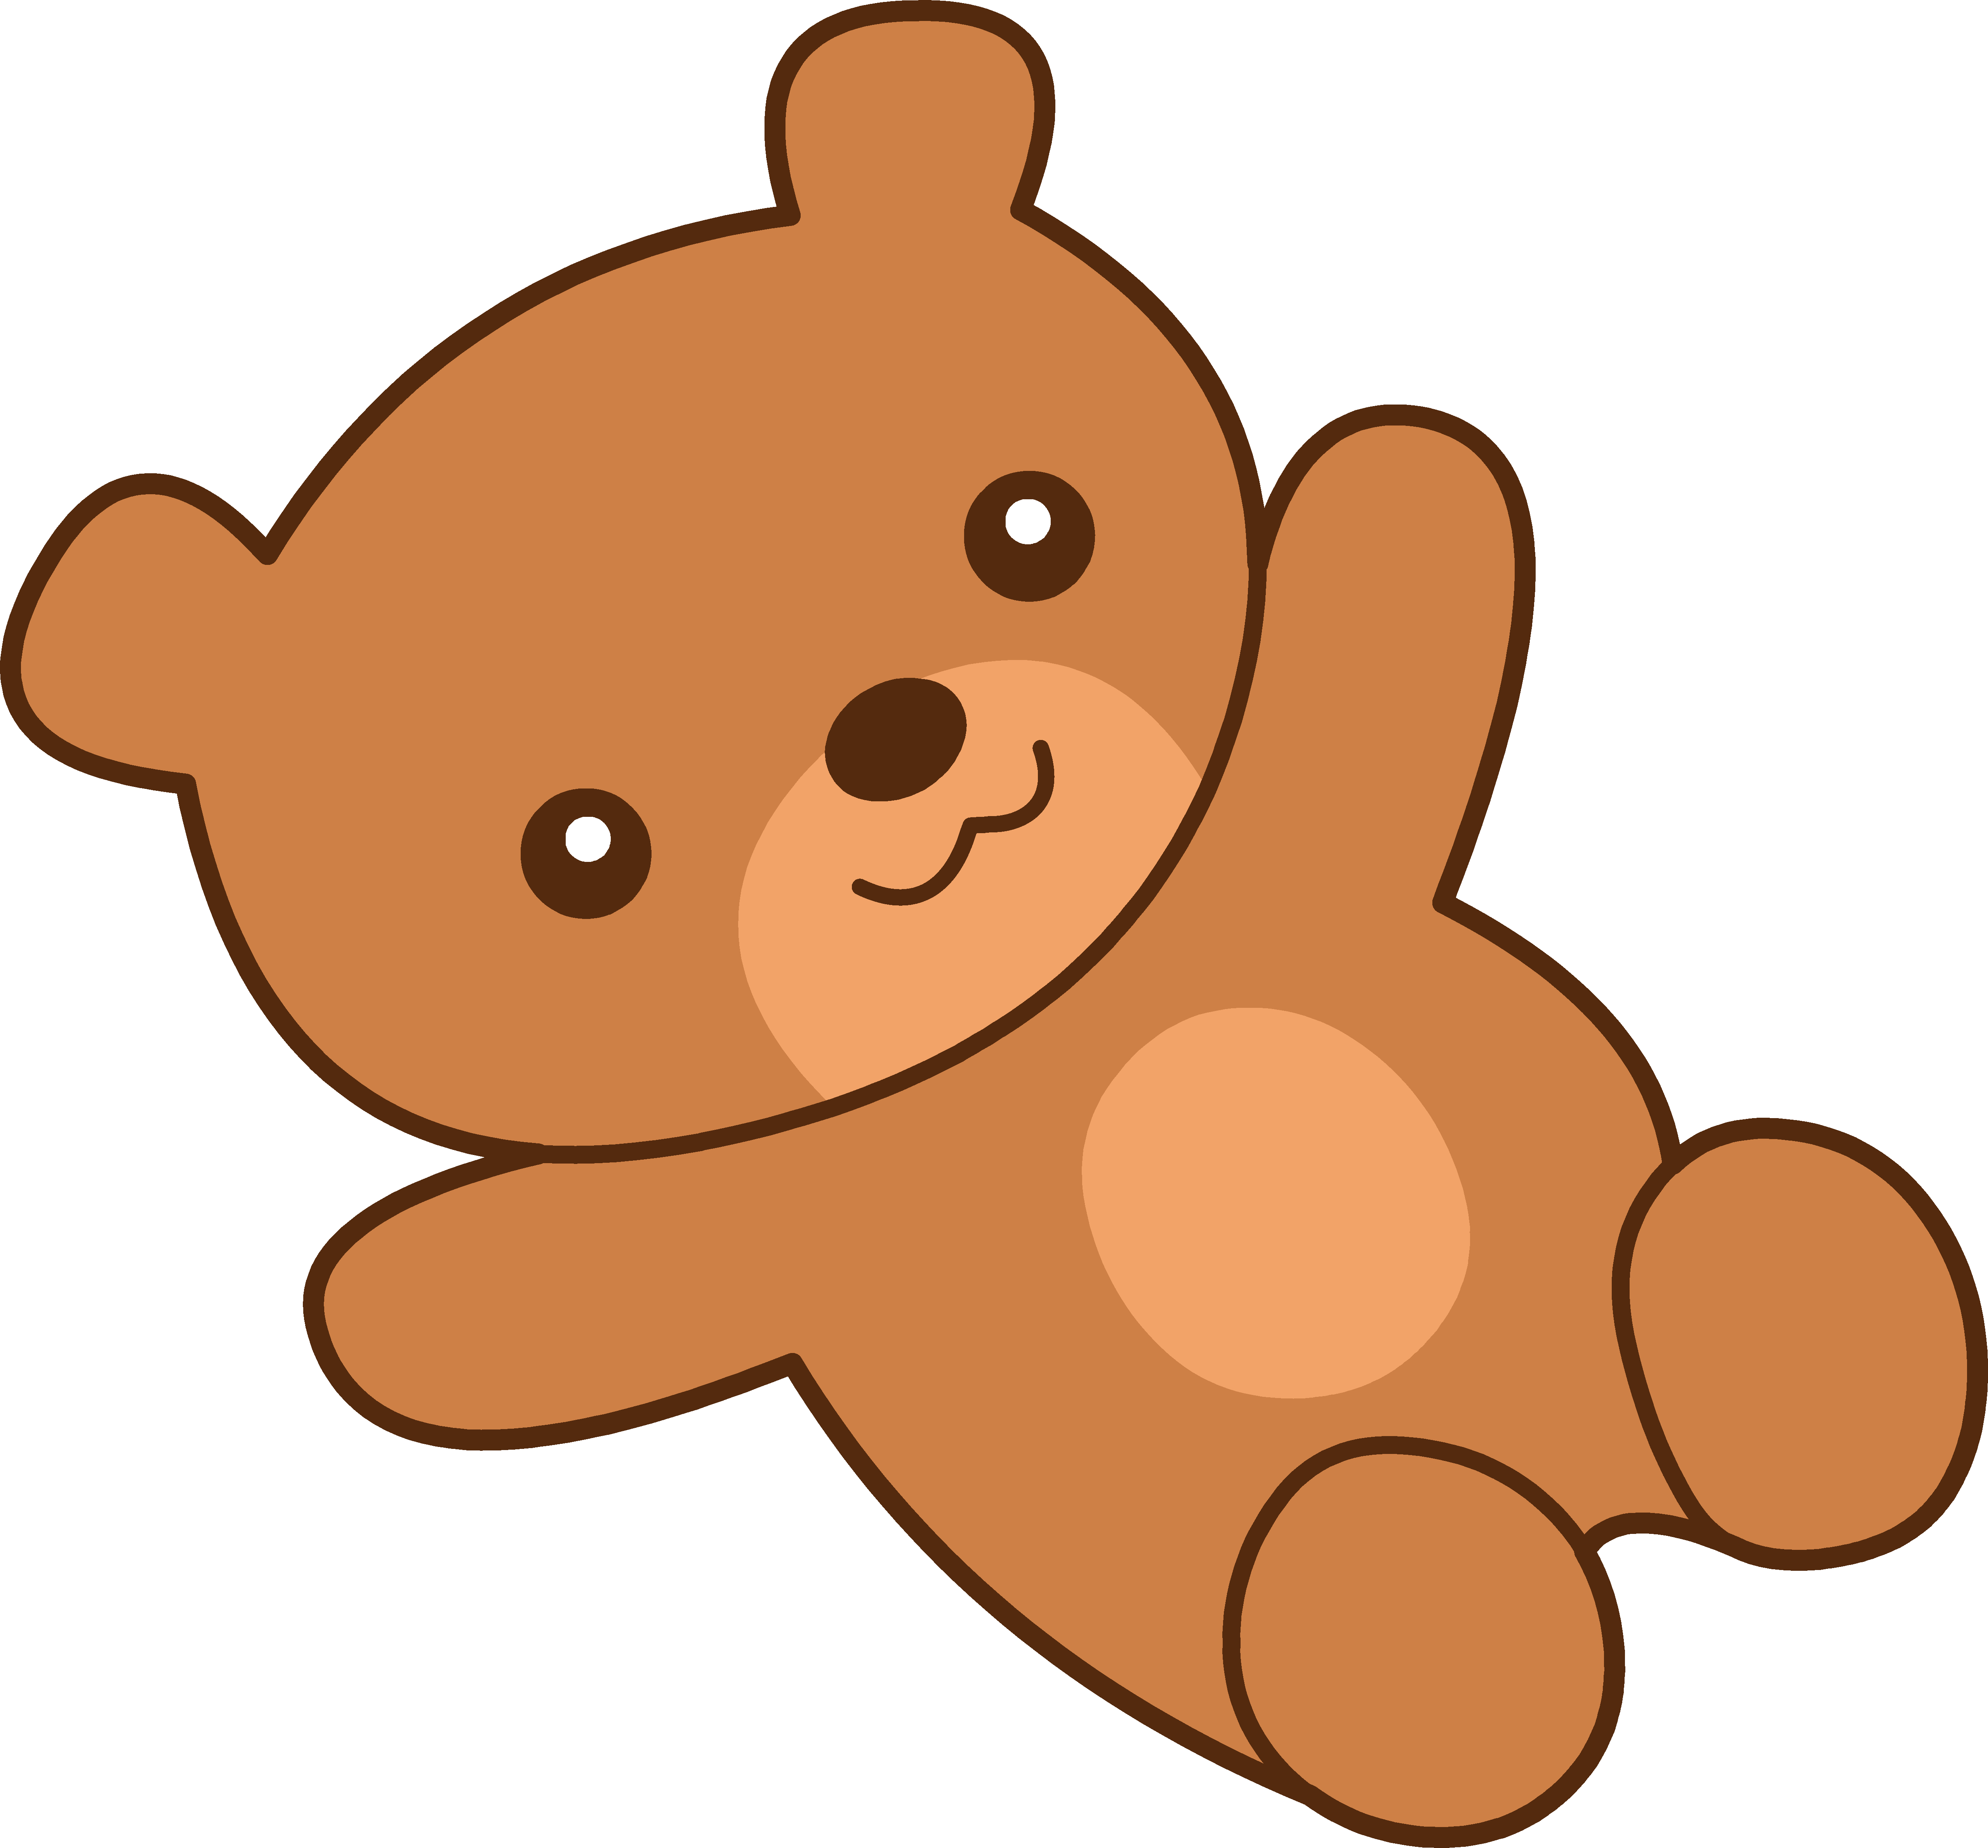 Cute brown teddy clipart. Bear clip art white background image download